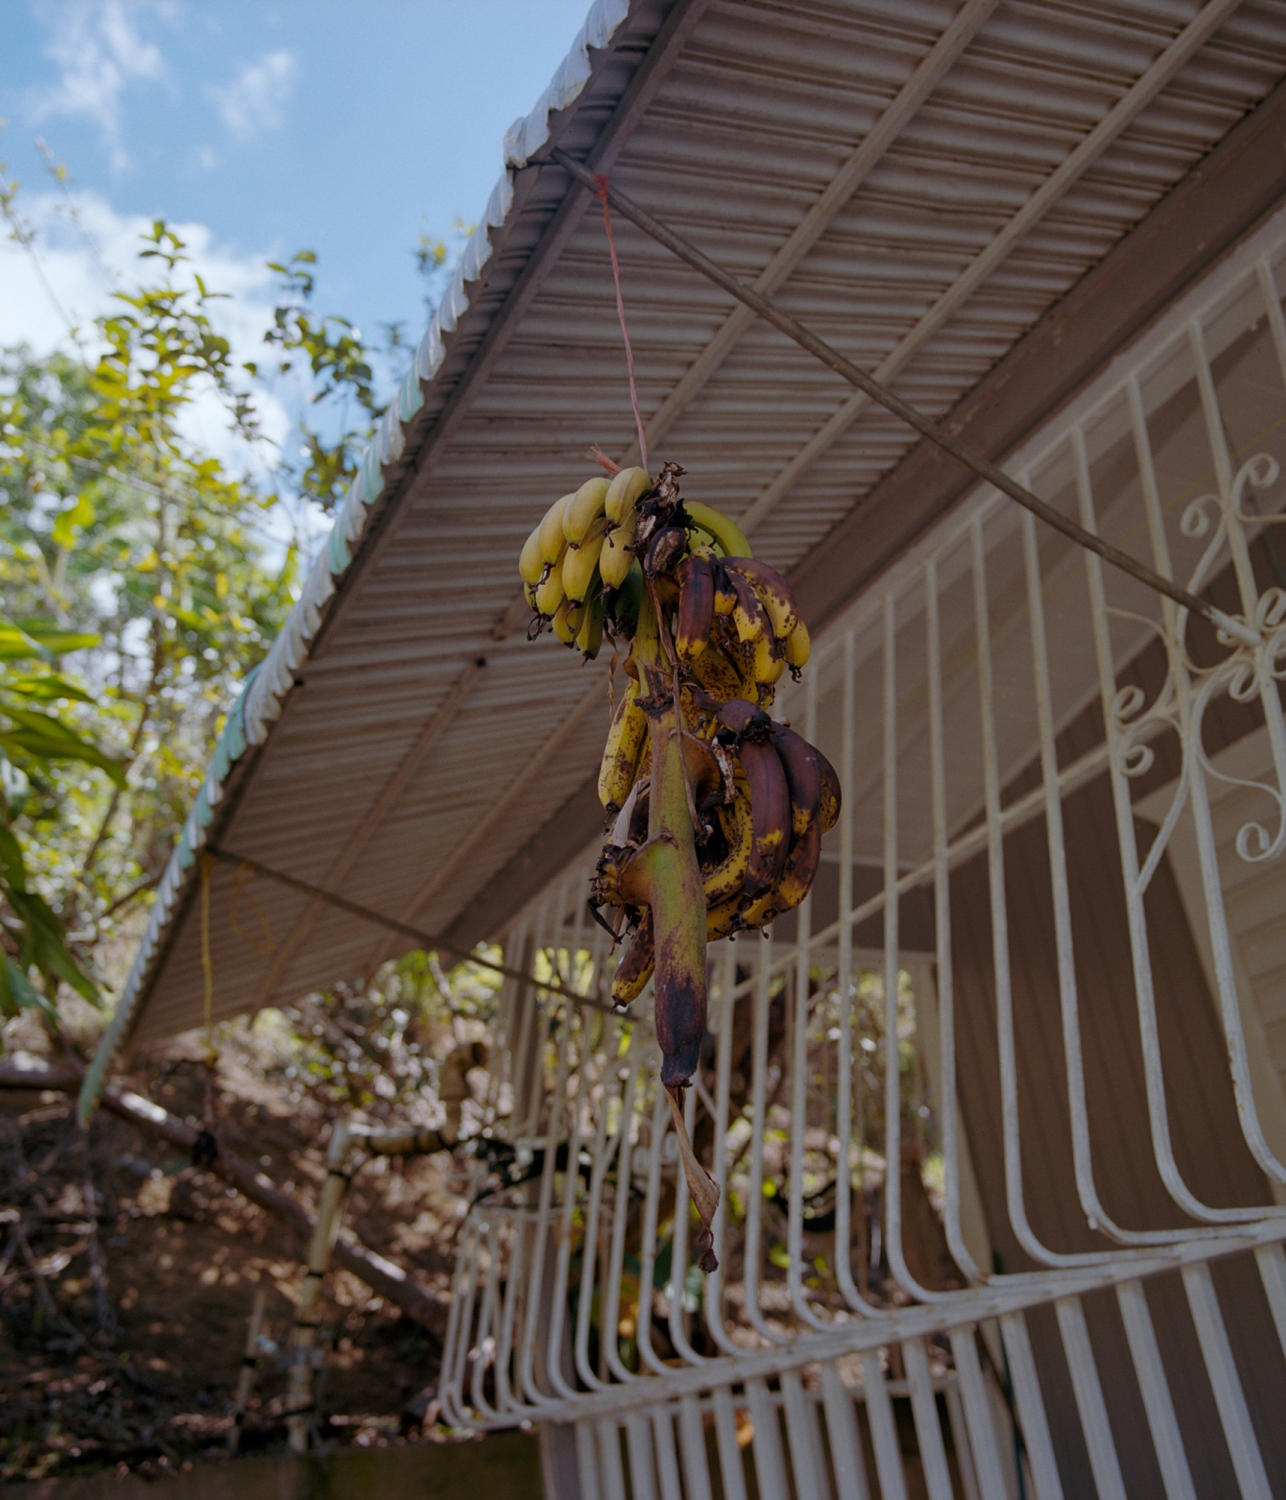 A branch with ripe plantains hangs outside a home in the barrio La Yuca. After the storm, the island's plantain supply all but vanished, and even after six months when this photo was taken, the island was still experiencing a shortage of the fruit that forms a central ingredient in many island dishes. When traveling with relatives around the neighborhood we encountered vendors charging around five dollars for four plantains, which under normal circumstances would be an absurd price. Ponce, Puerto Rico, February 2018.